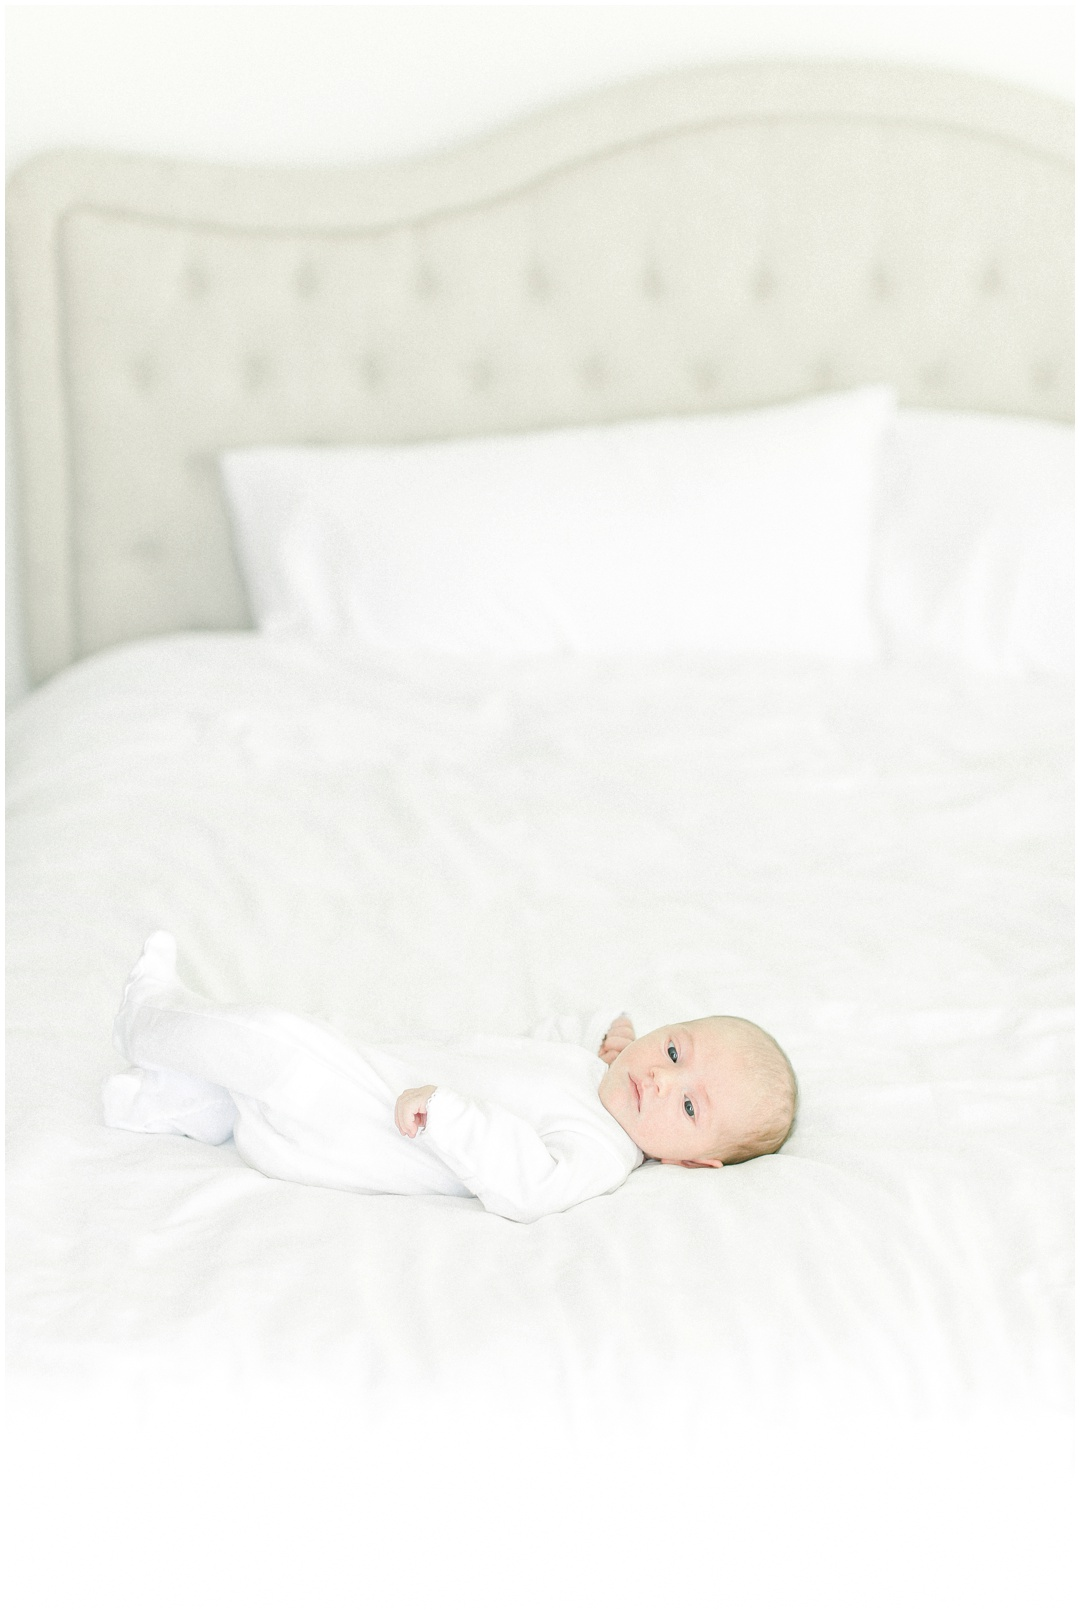 Newport_Beach_Newborn_Light_Airy_Natural_Photographer_Newport_Beach_Photographer_Orange_County_Family_Photographer_Cori_Kleckner_Photography_Newport_Beach_Photographer_newborn_Stephanie_Messiter_Steinhafel_David_Steinhafel_3826.jpg